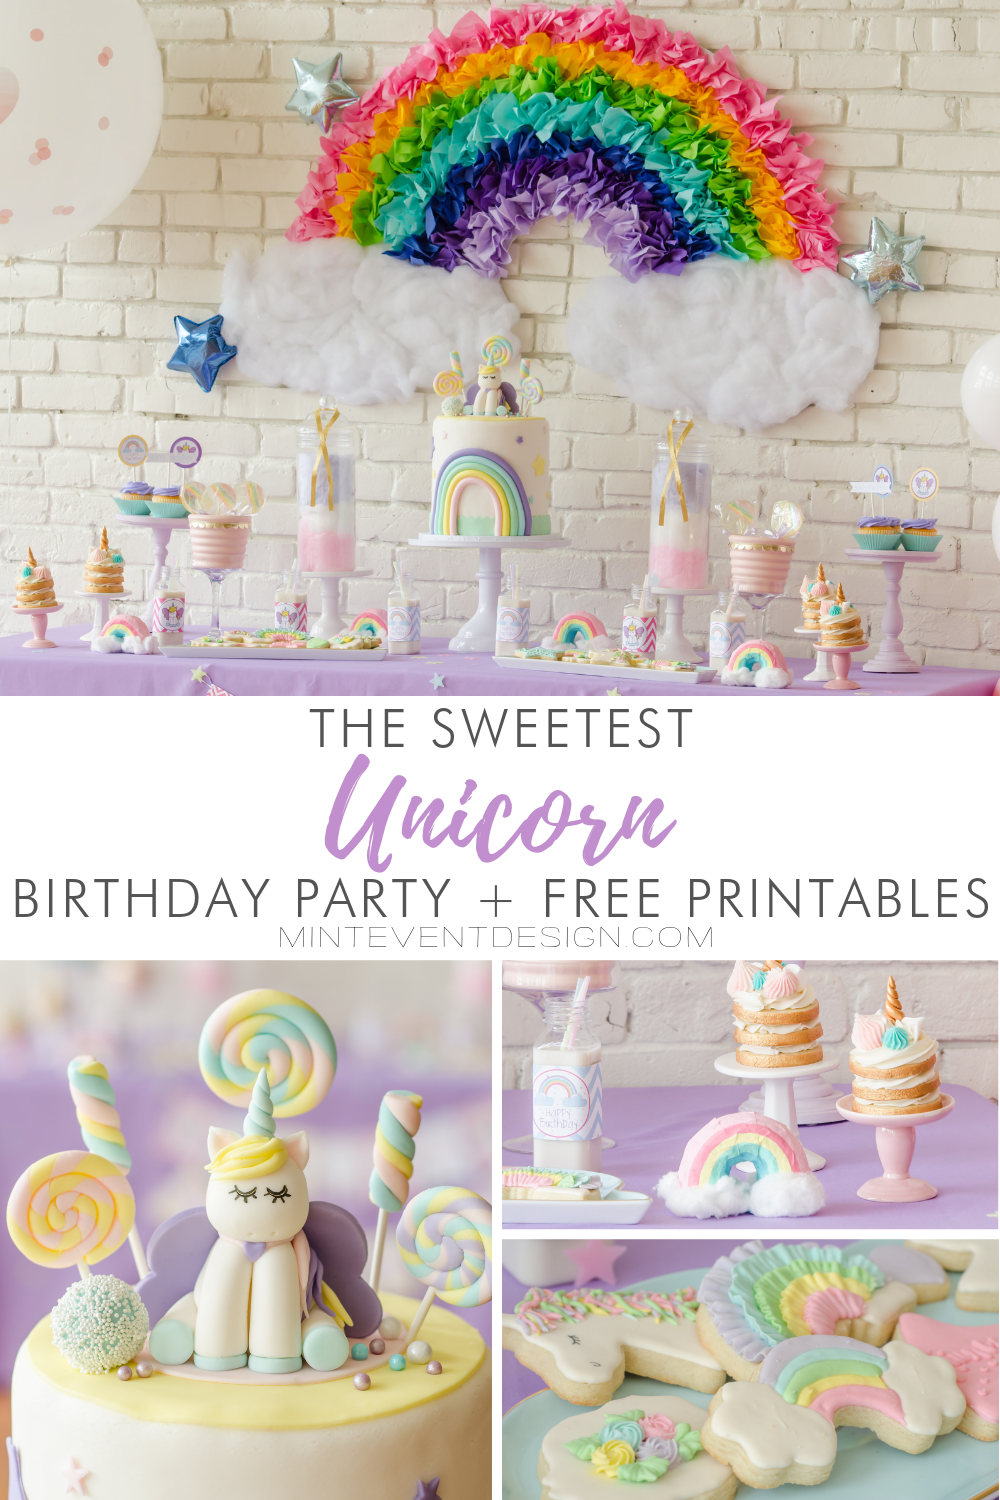 Come see the sweetest unicorn birthday party ideas and free unicorn party printables for you to download. Click for all the pastel rainbow party details from Mint Event Design including how to make paper mache rainbows. Printables feature a unicorn illustration from the birthday girl herself. www.minteventdesign.com #unicornparty #unicorndecor #unicorndecorations #pastelrainbow #birthdayparty #birthdaypartyideas